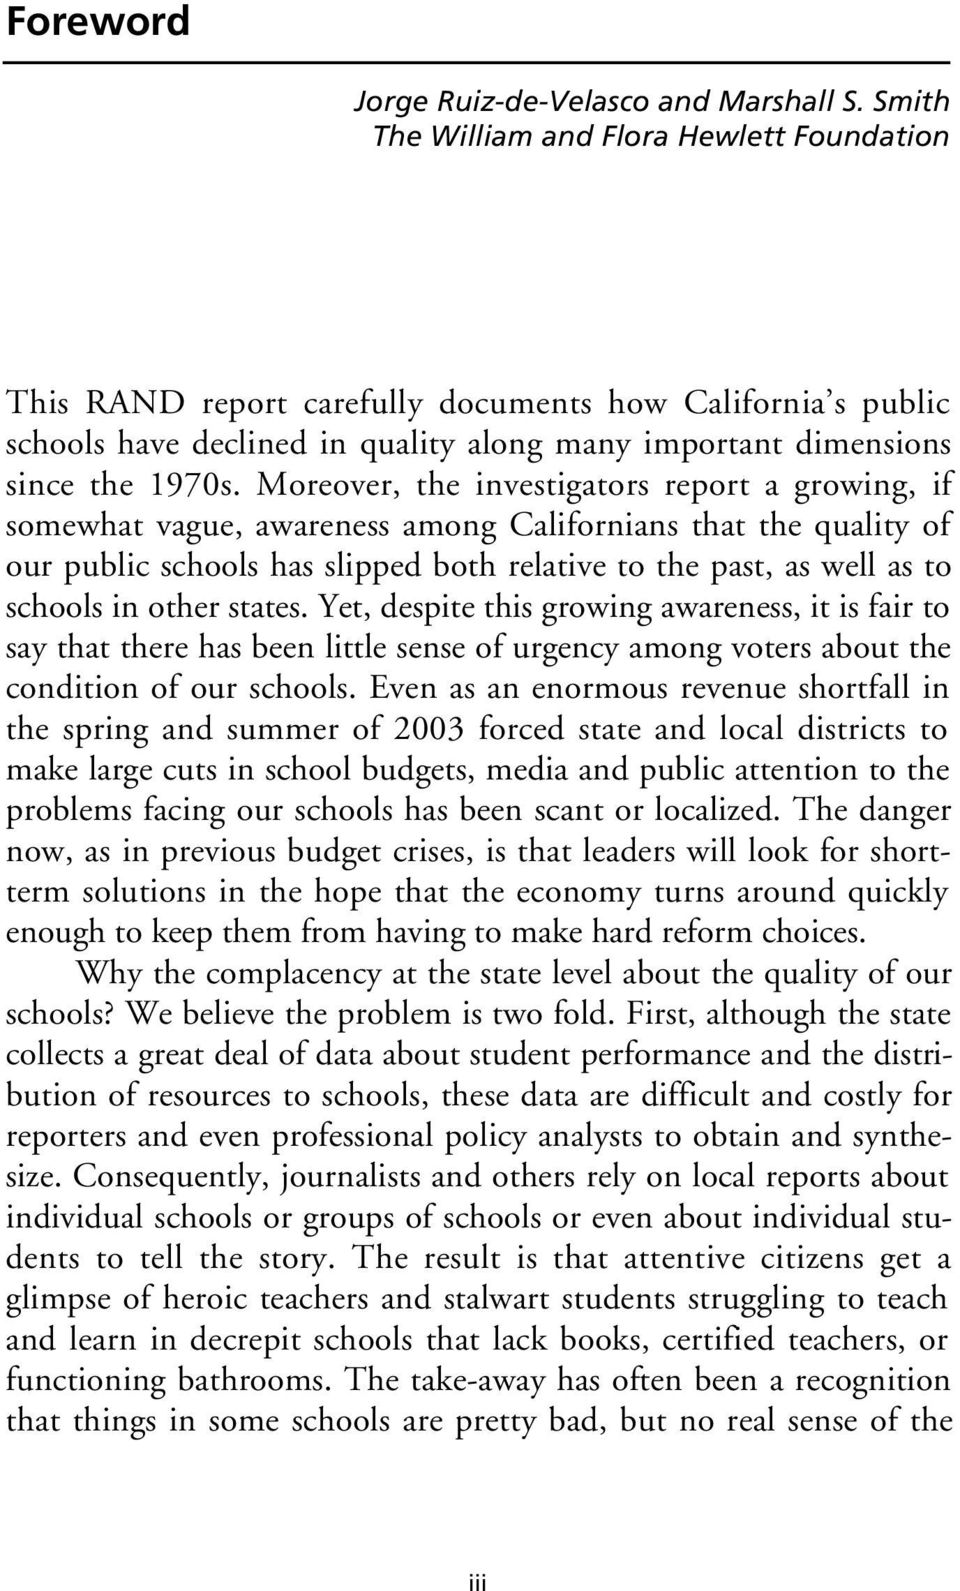 Moreover, the investigators report a growing, if somewhat vague, awareness among Californians that the quality of our public schools has slipped both relative to the past, as well as to schools in